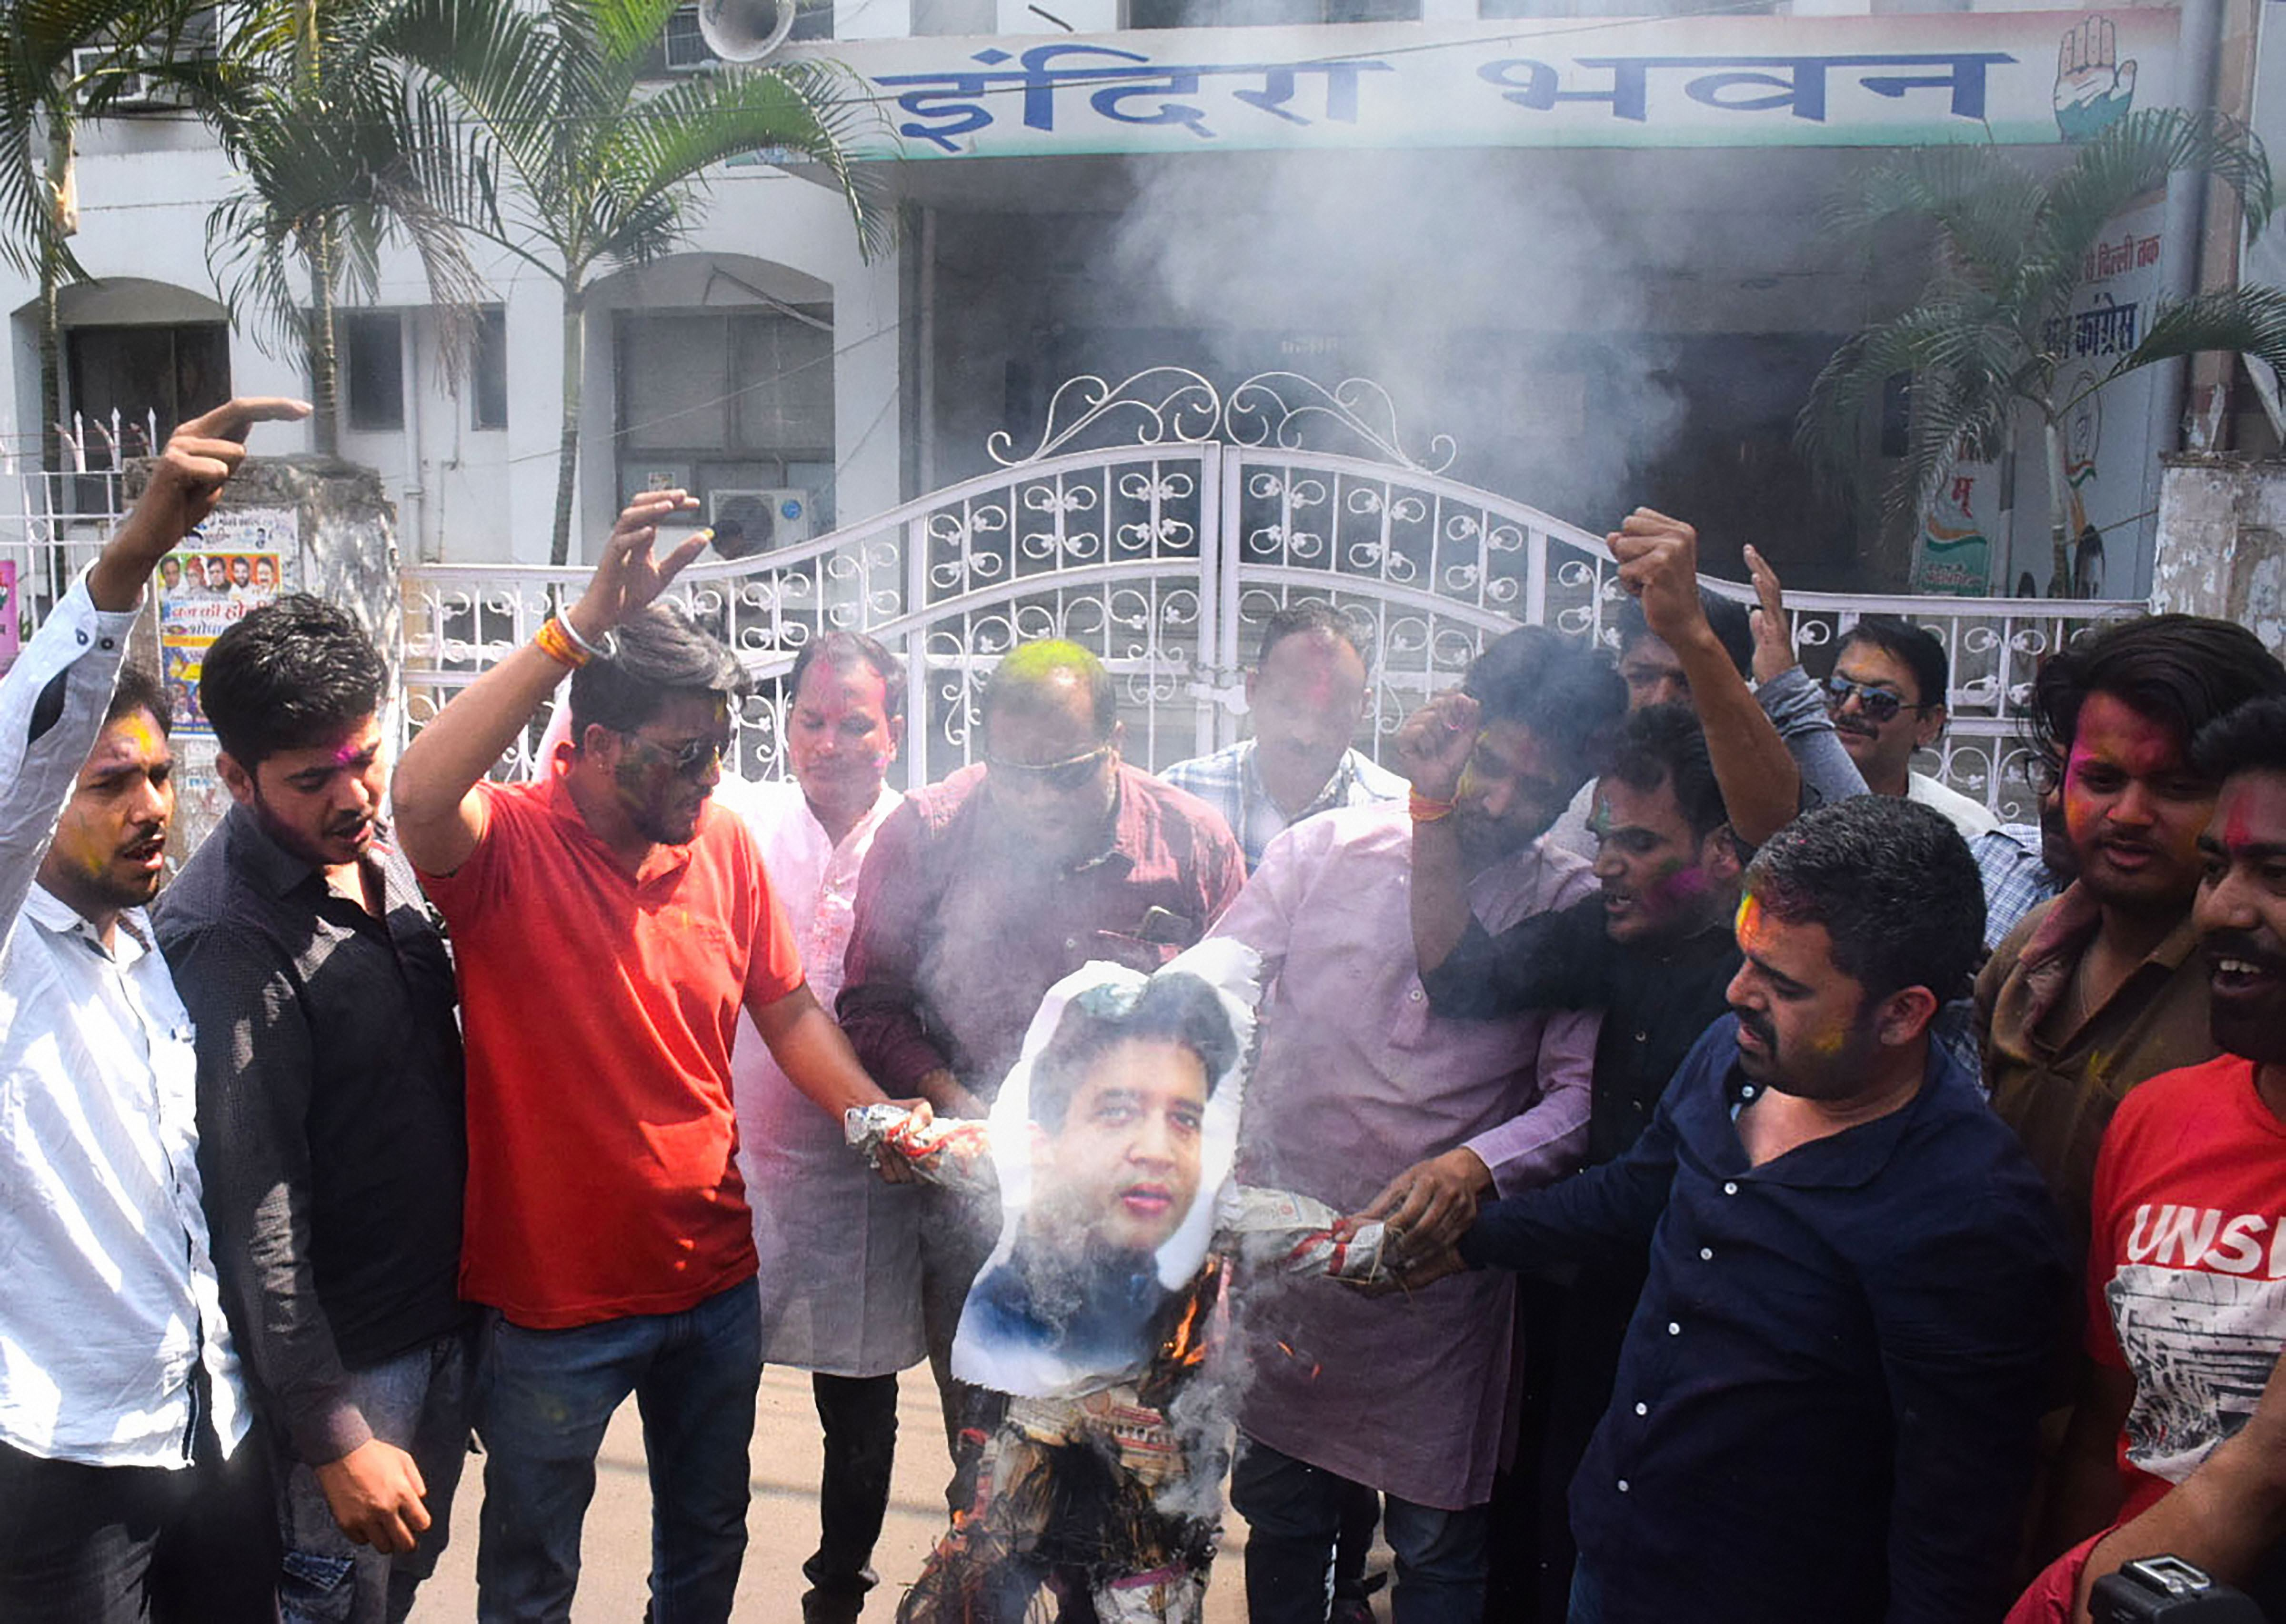 Congress party activists burn an effigy of Jyotiraditya Scindia after he resigned from the party, at PCC headquarters in Bhopal, Tuesday, March 10, 2020